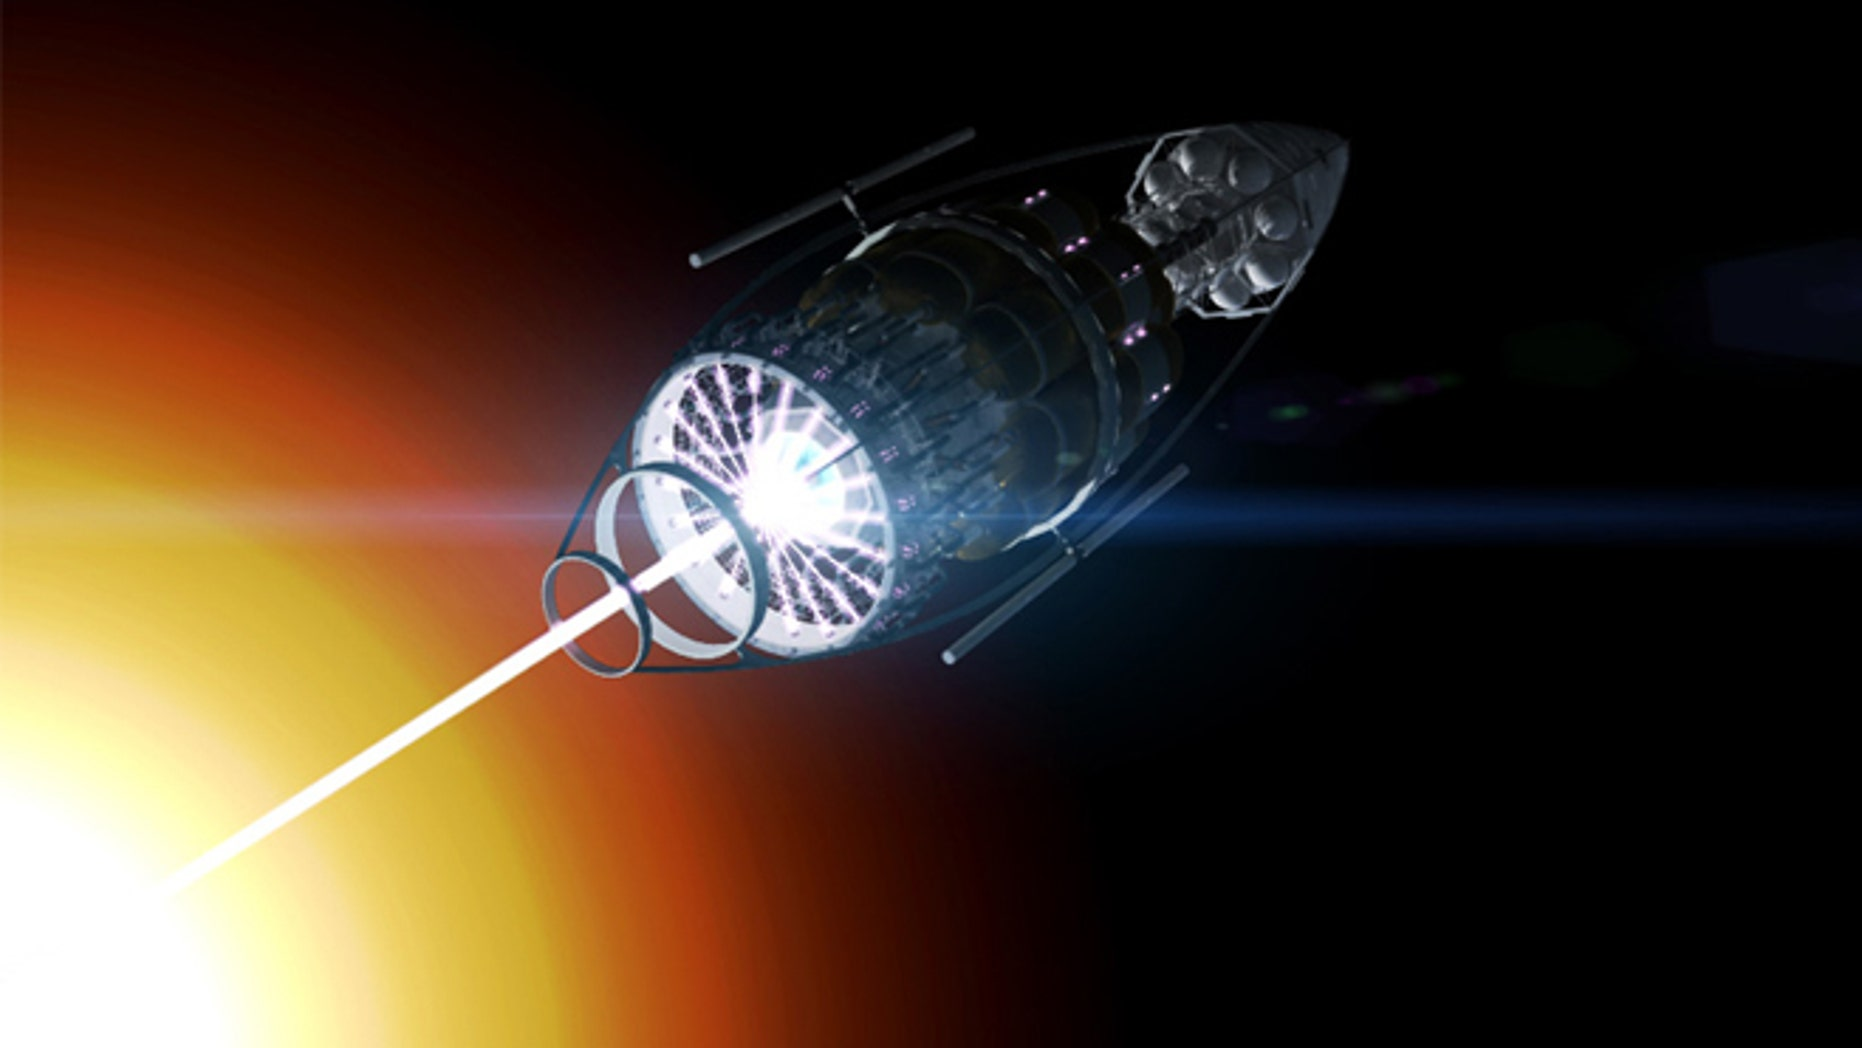 Interstellar Space Travel May Be Possible Using Lasers And